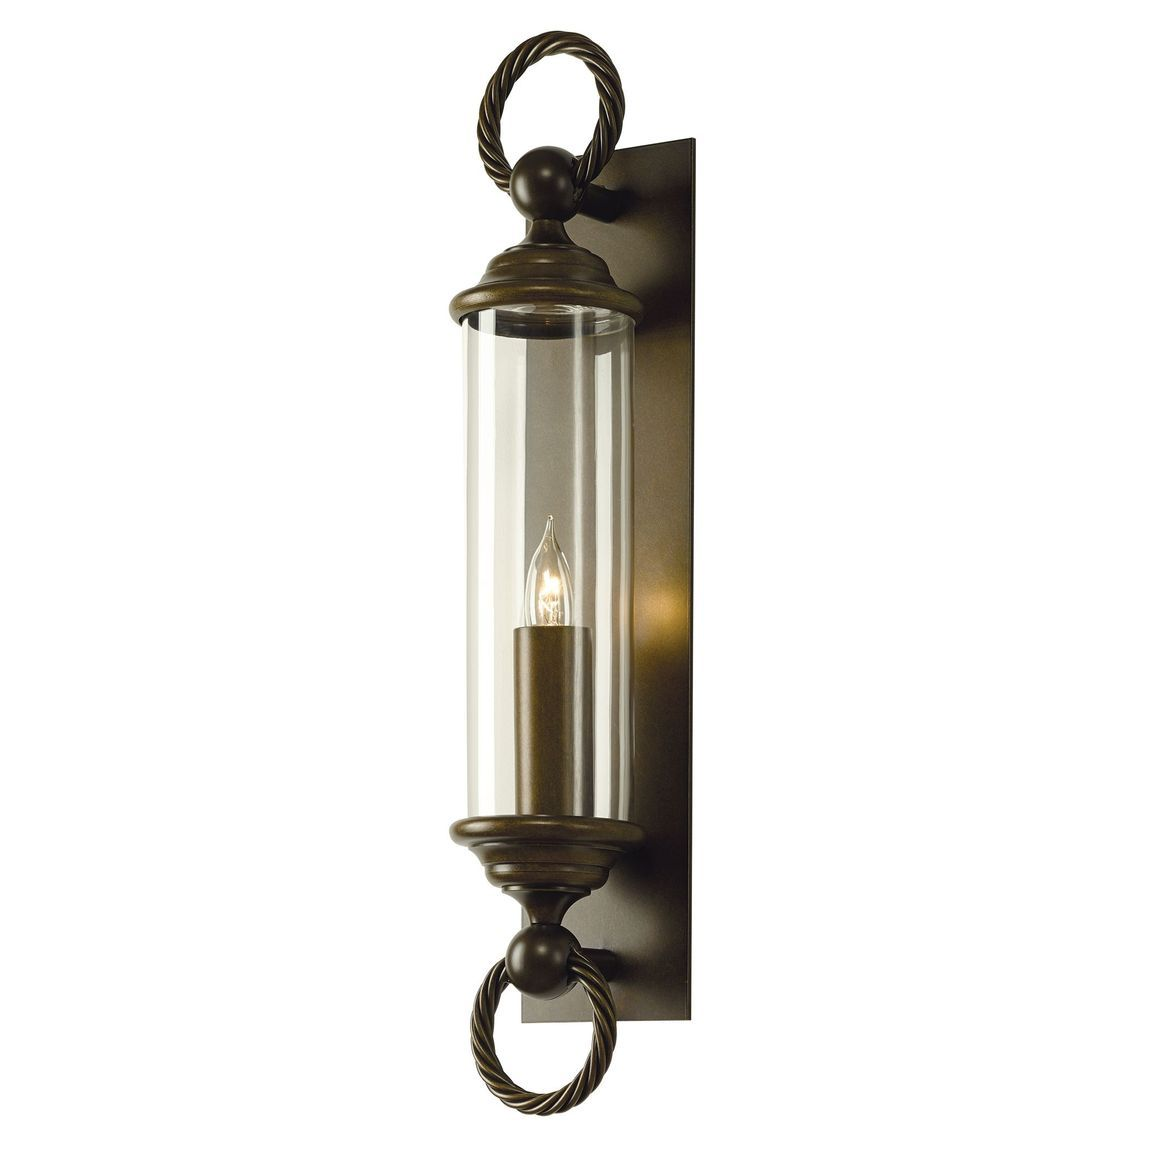 Cavo Large Outdoor Wall Sconce Iron Wall Sconces Sconces